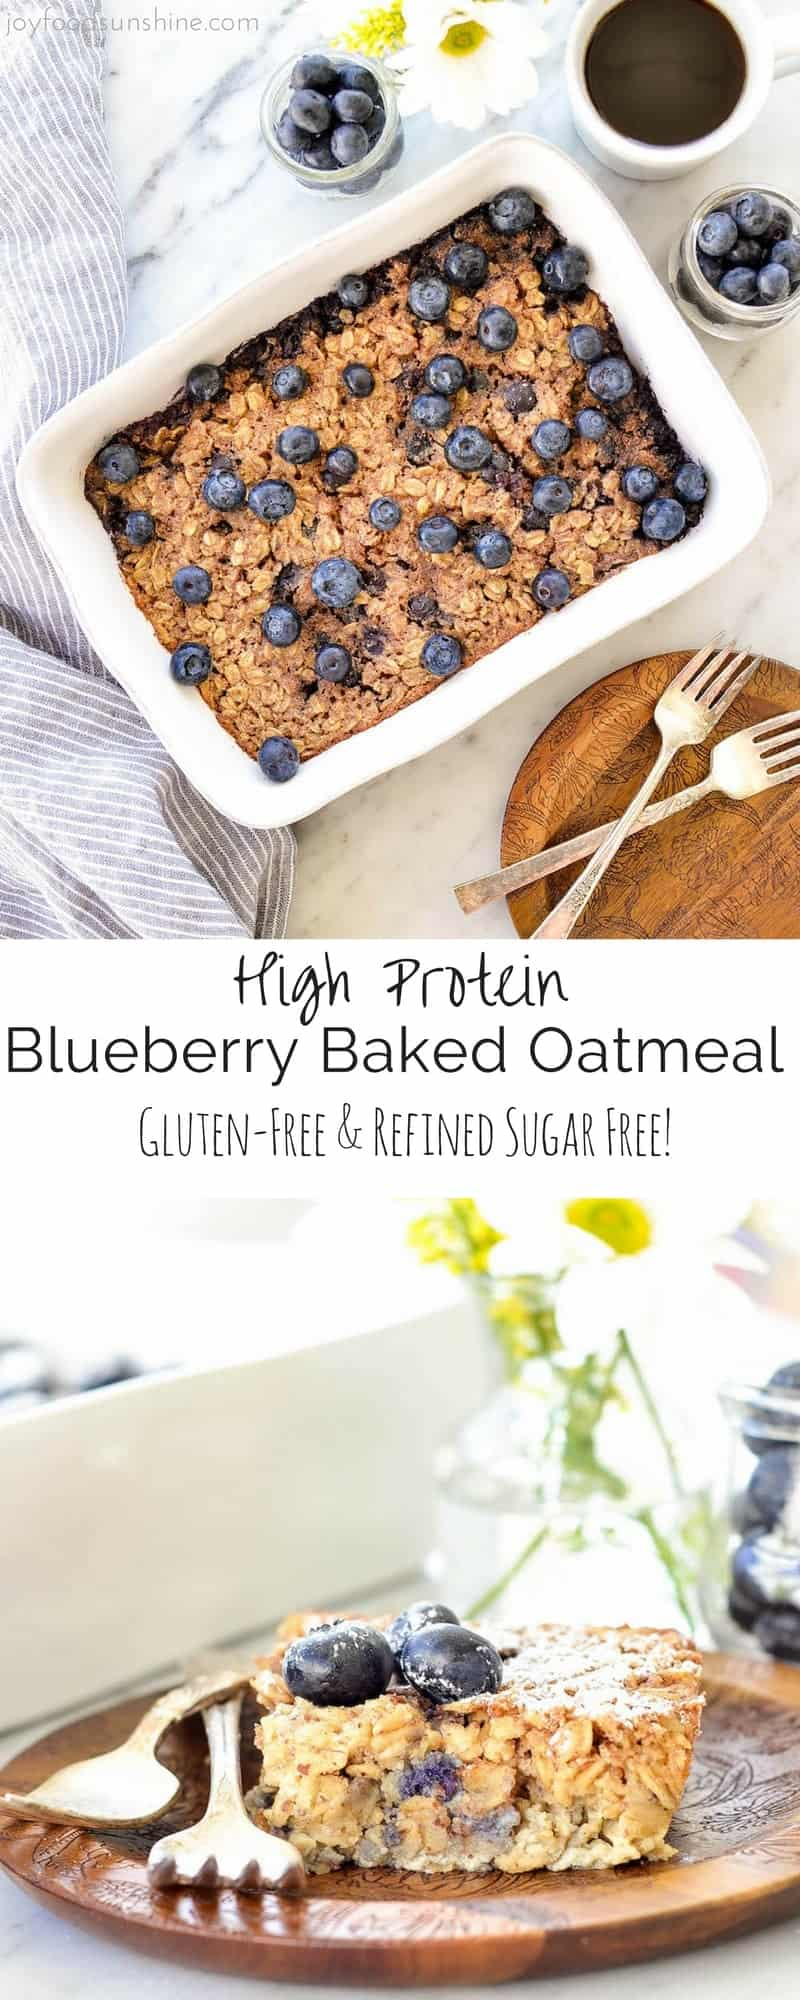 This Blueberry Baked Oatmeal recipe is the perfect make-ahead breakfast to feed a crowd! The addition of Greek yogurt and almond meal make it high-protein! It's gluten-free and refined sugar free, and totally customizable!